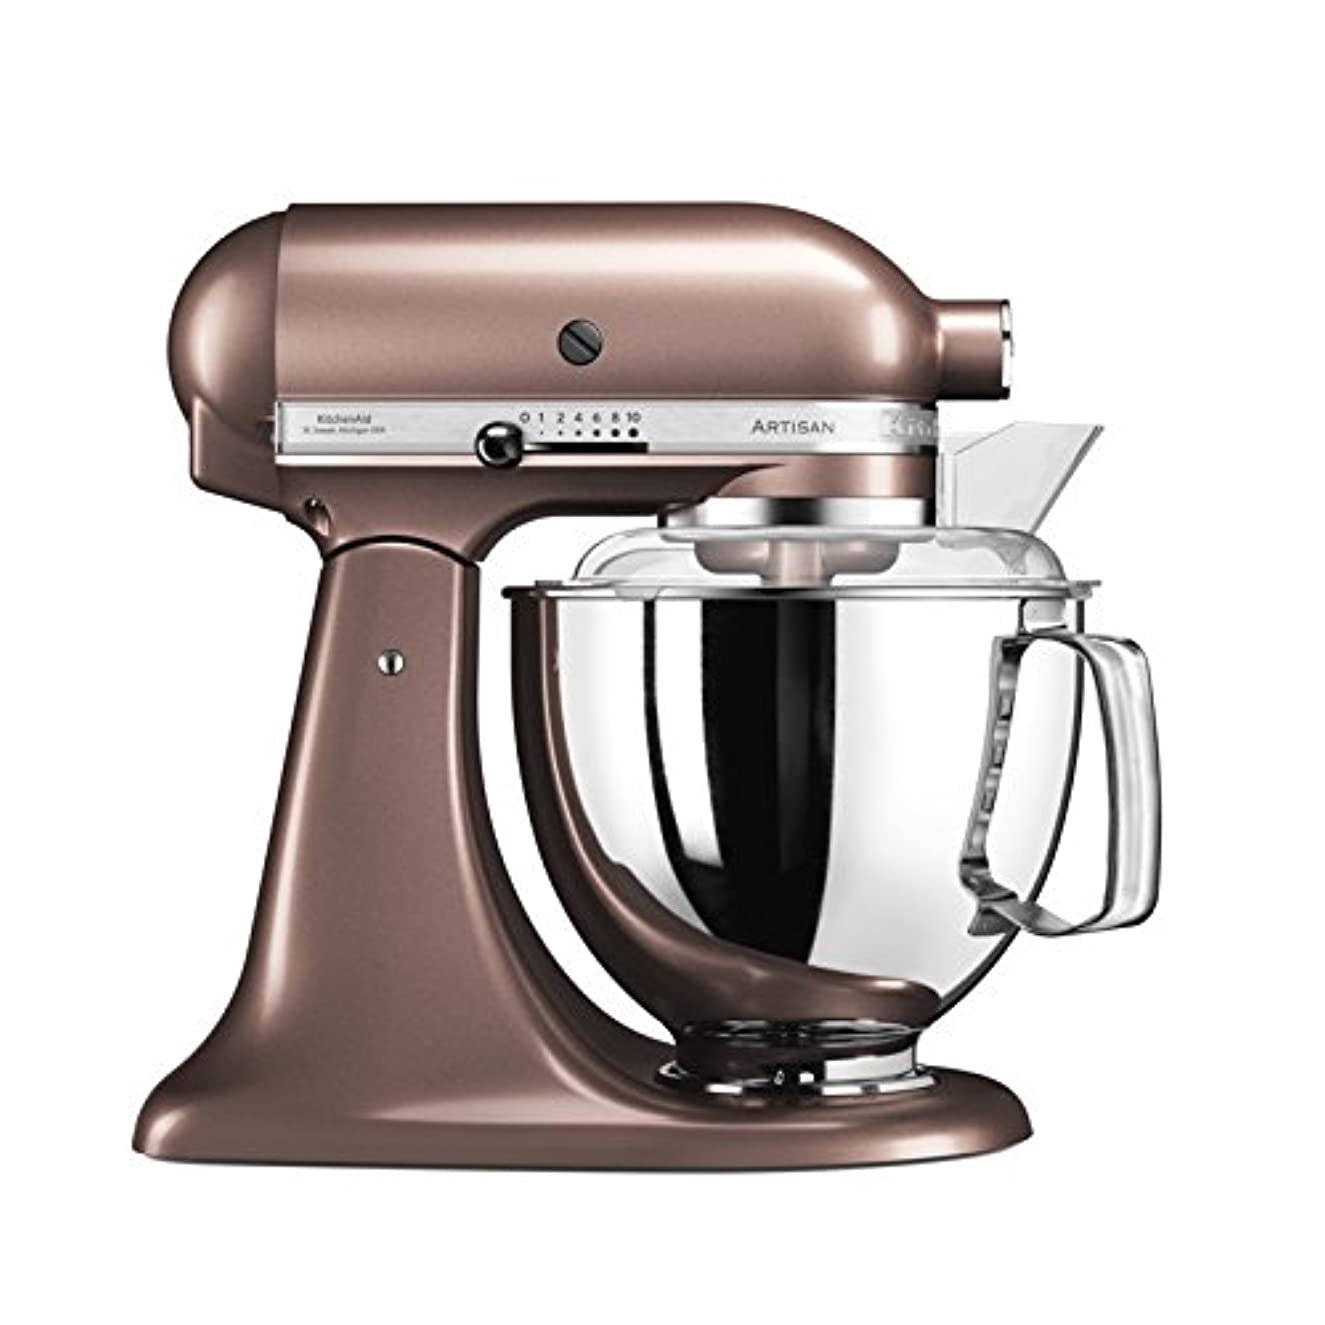 KitchenAid Artisan 5KSM175PSEAP 5 Qt.Stand Mixer Apple Cider with TWO Bowls & Flex Edge Beater 220 VOLTS NOT FOR USA